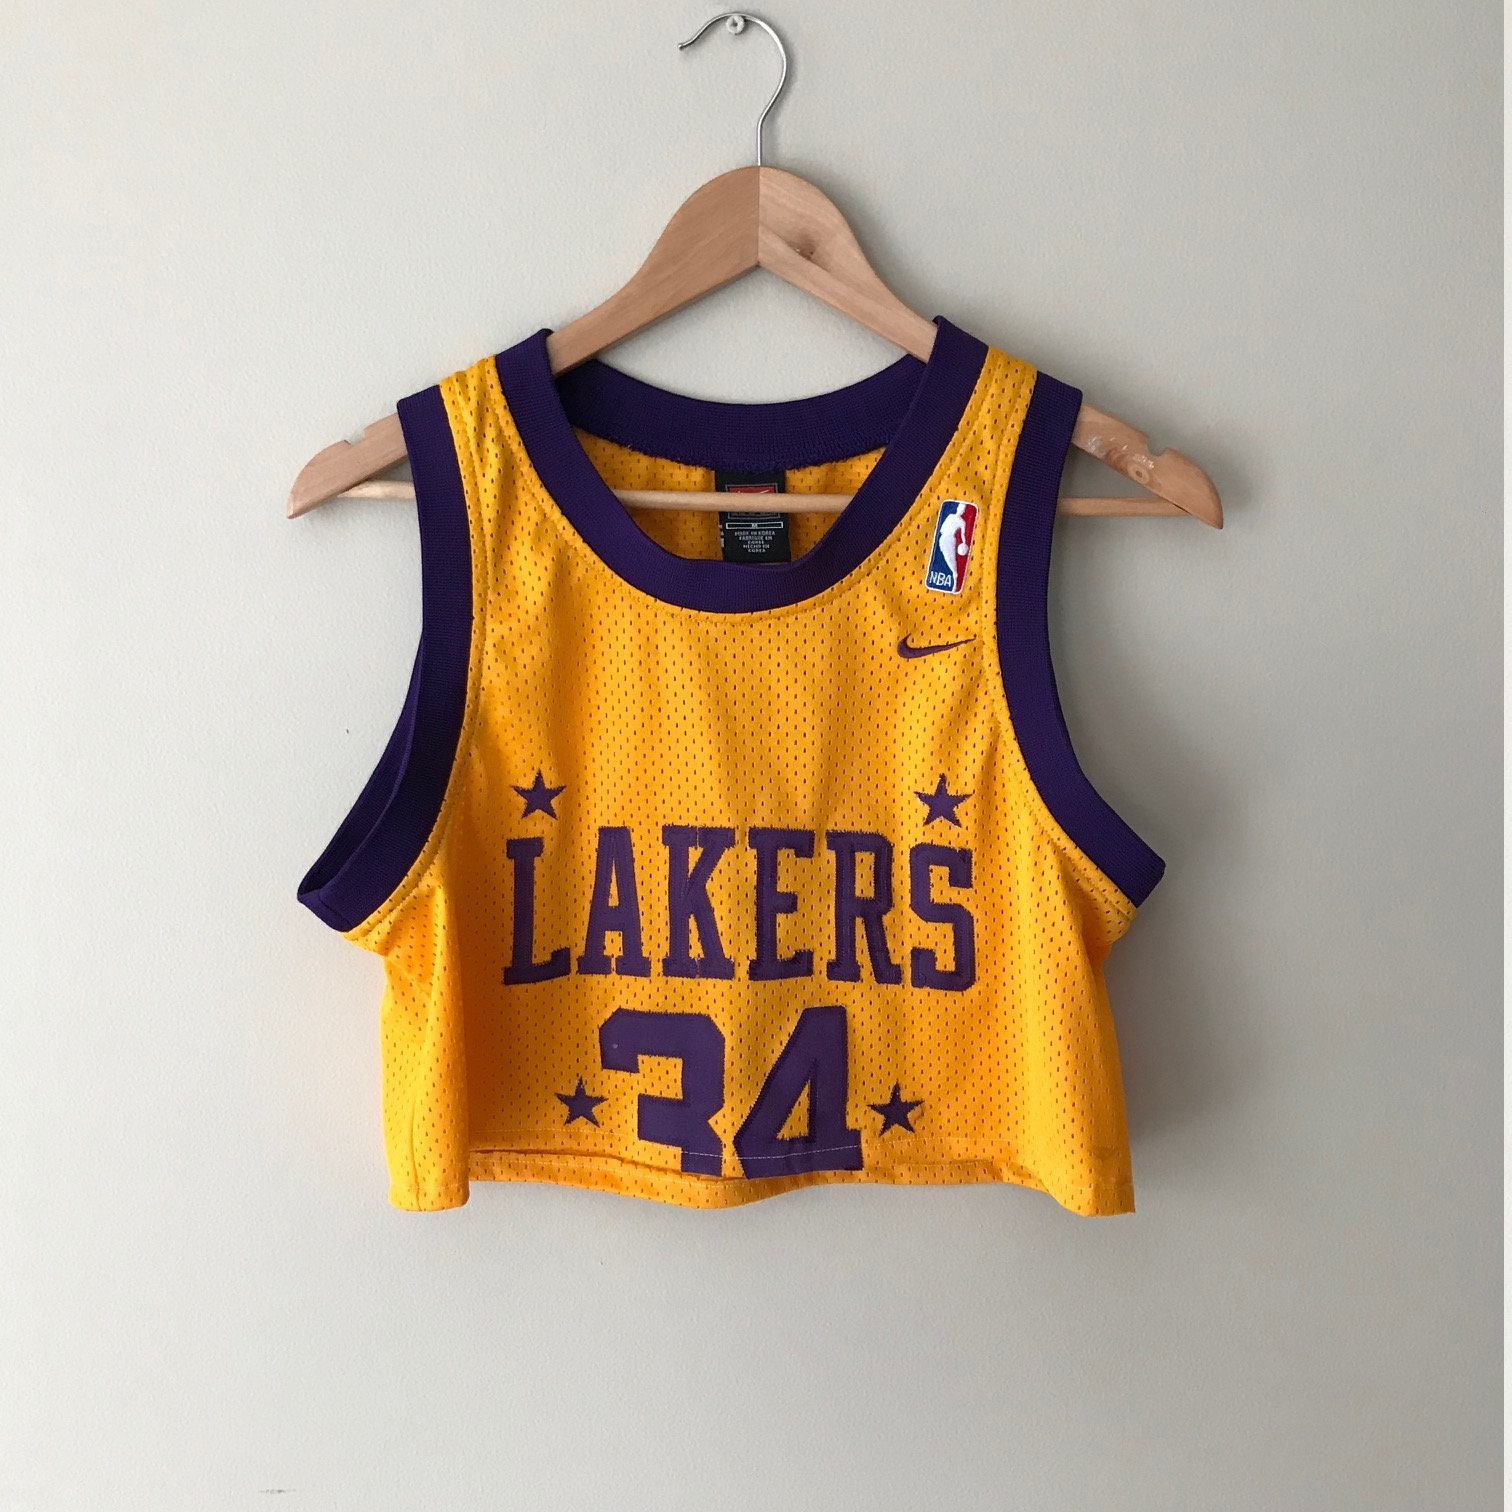 lowest price 3ea5d 7874d Reworked/Cropped - LA Lakers - Retro Basketball Jersey ...